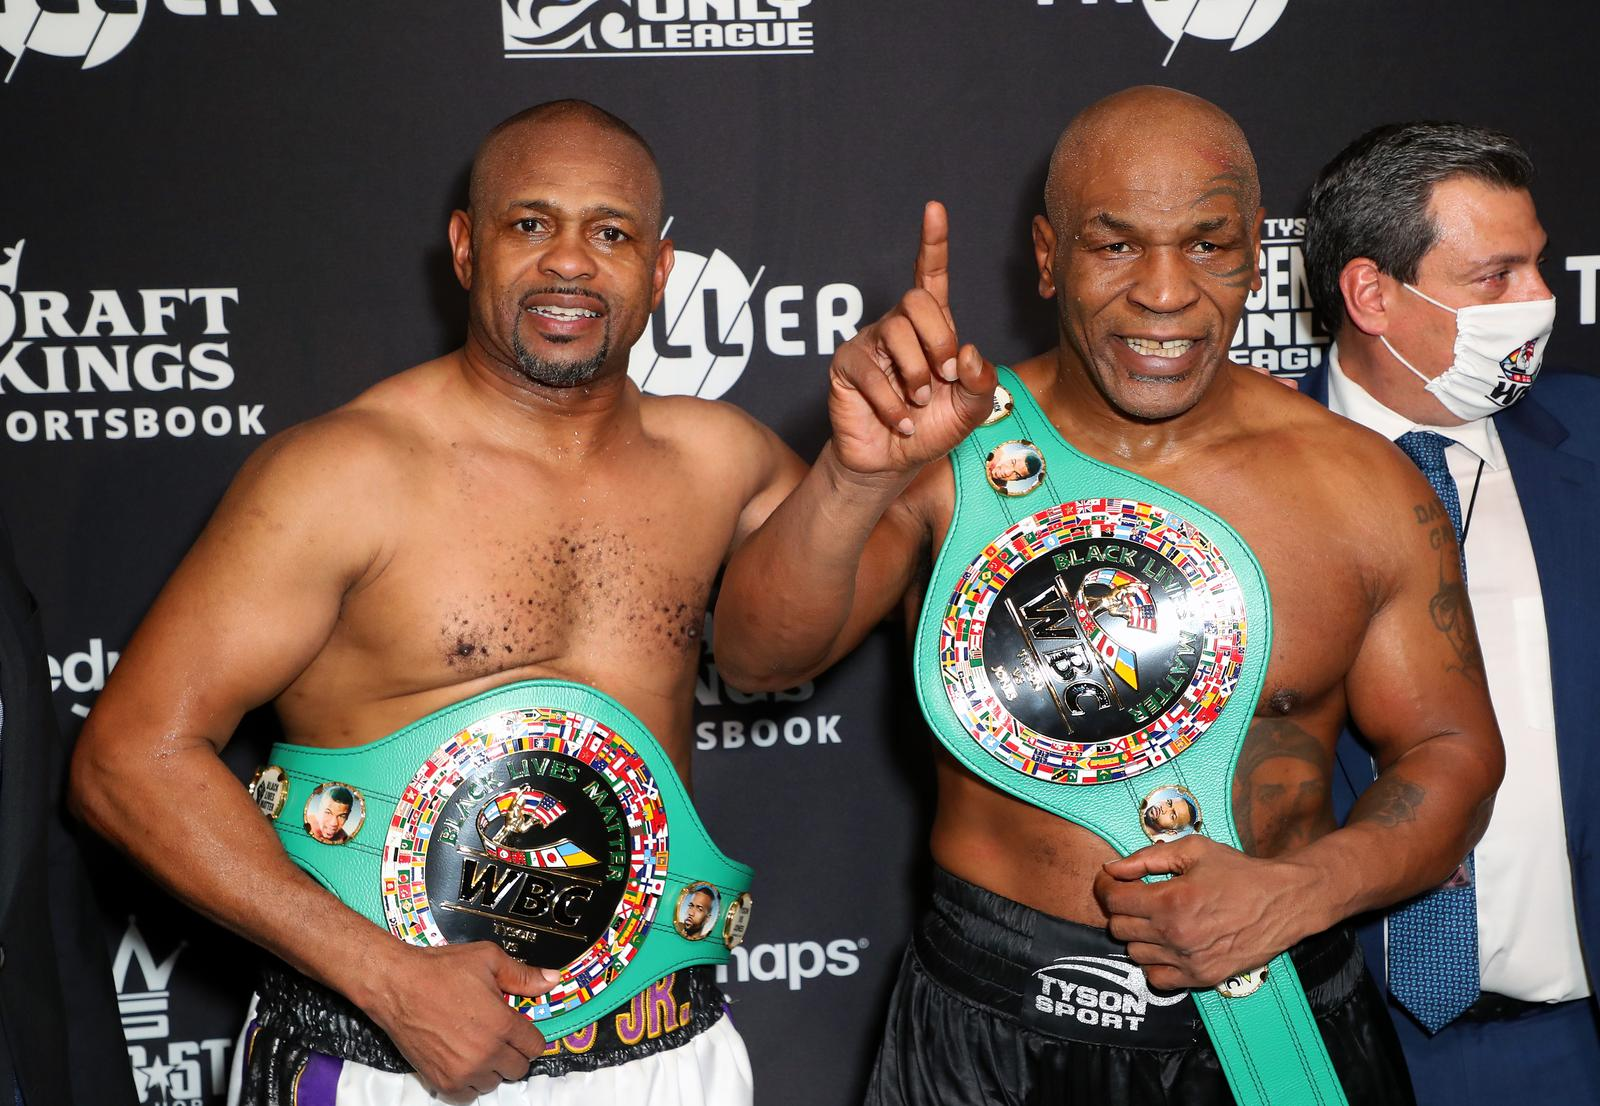 Nov 28, 2020; Los Angeles, CA, USA; Mike Tyson and Roy Jones, Jr. pose with their belts after a split draw during a heavyweight exhibition boxing bout for the WBC Frontline Belt at the Staples Center. Mandatory Credit: Joe Scarnici/Handout Photo via USA TODAY Sports